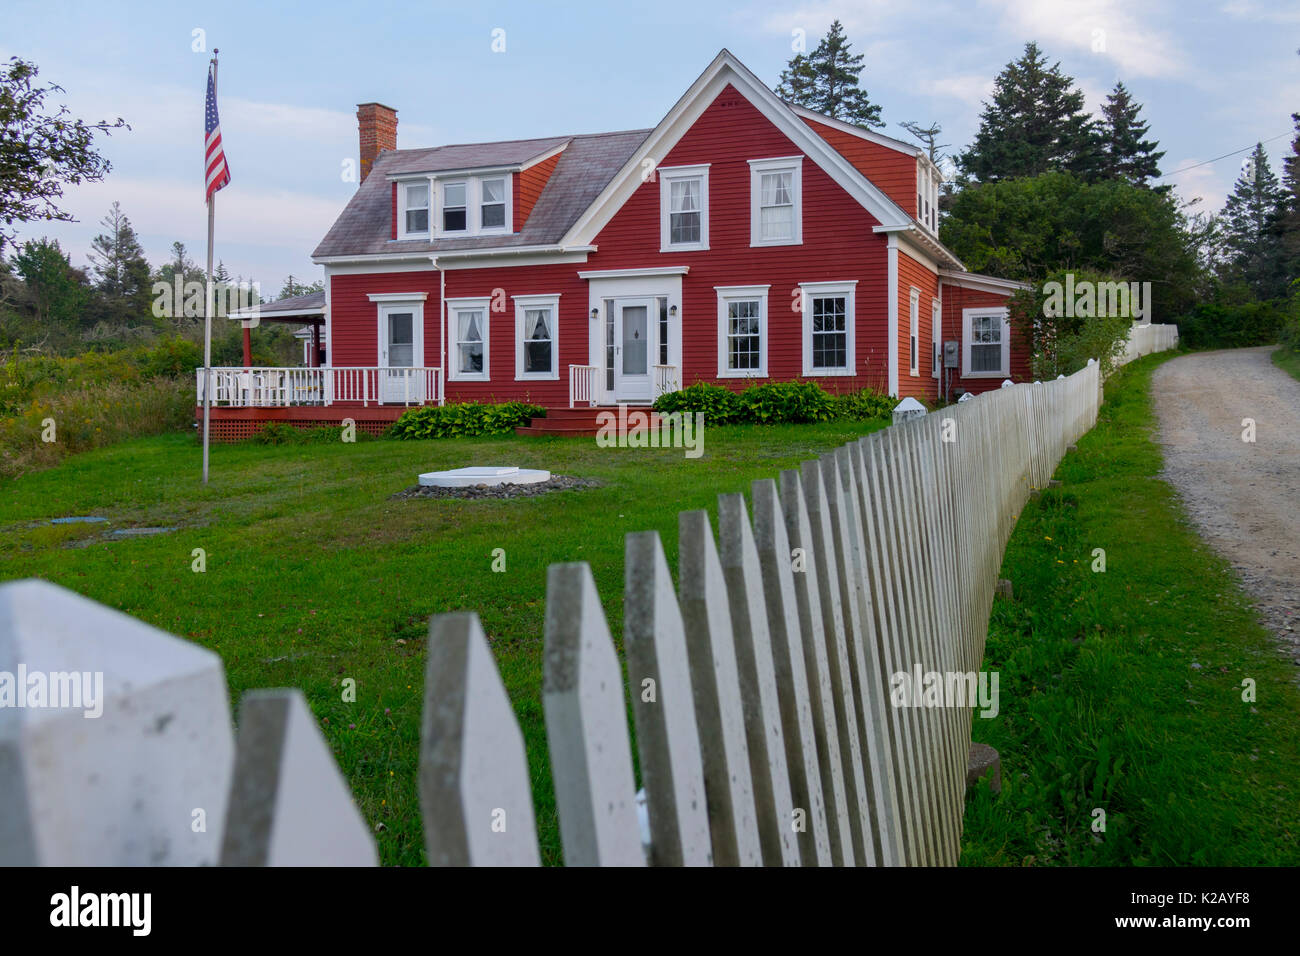 USA Maine ME Monhegan Island A red house on Lobster Cover Road with a white picket fence - Stock Image